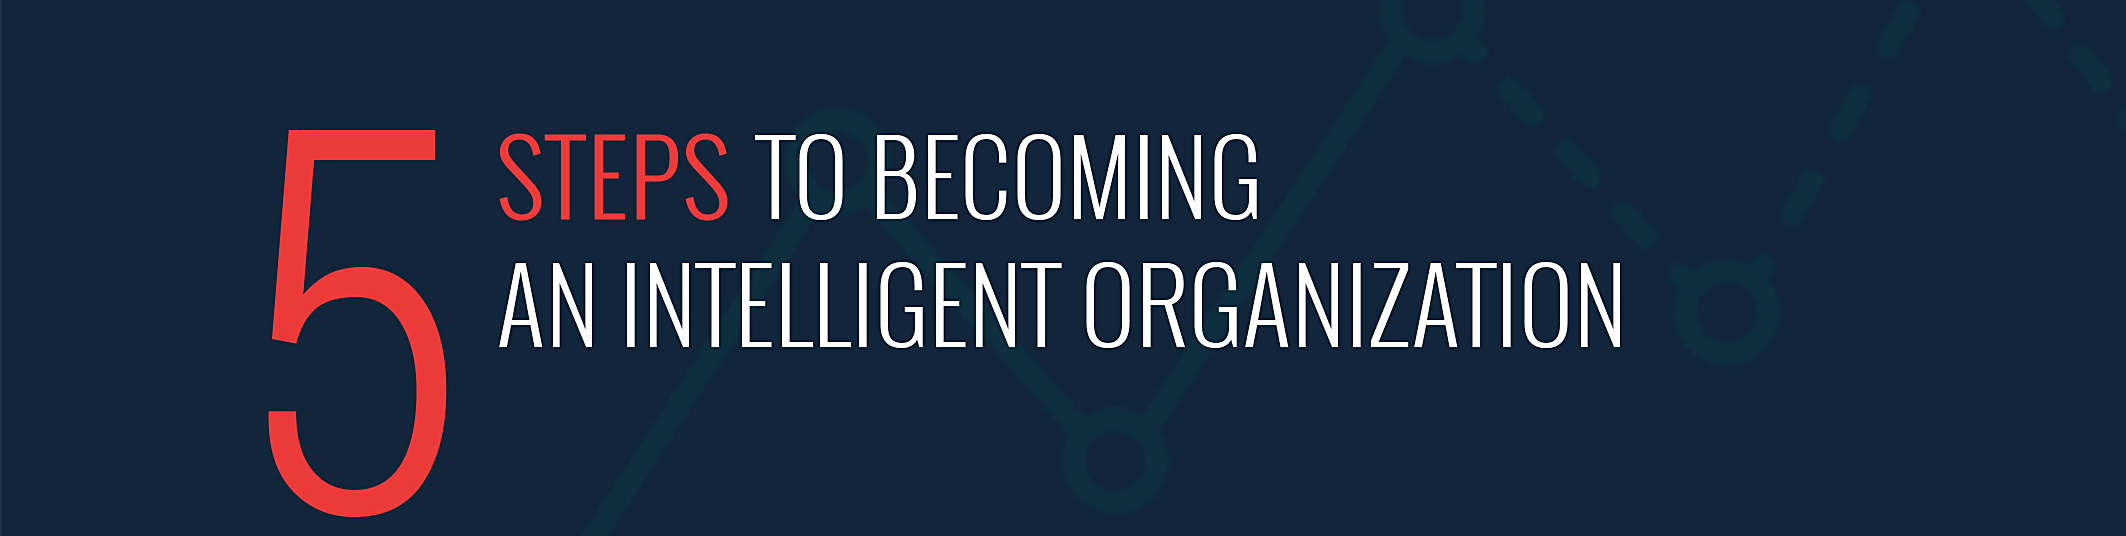 how do you become an organization of the future? - Learn the secrets to becoming an intelligent organization